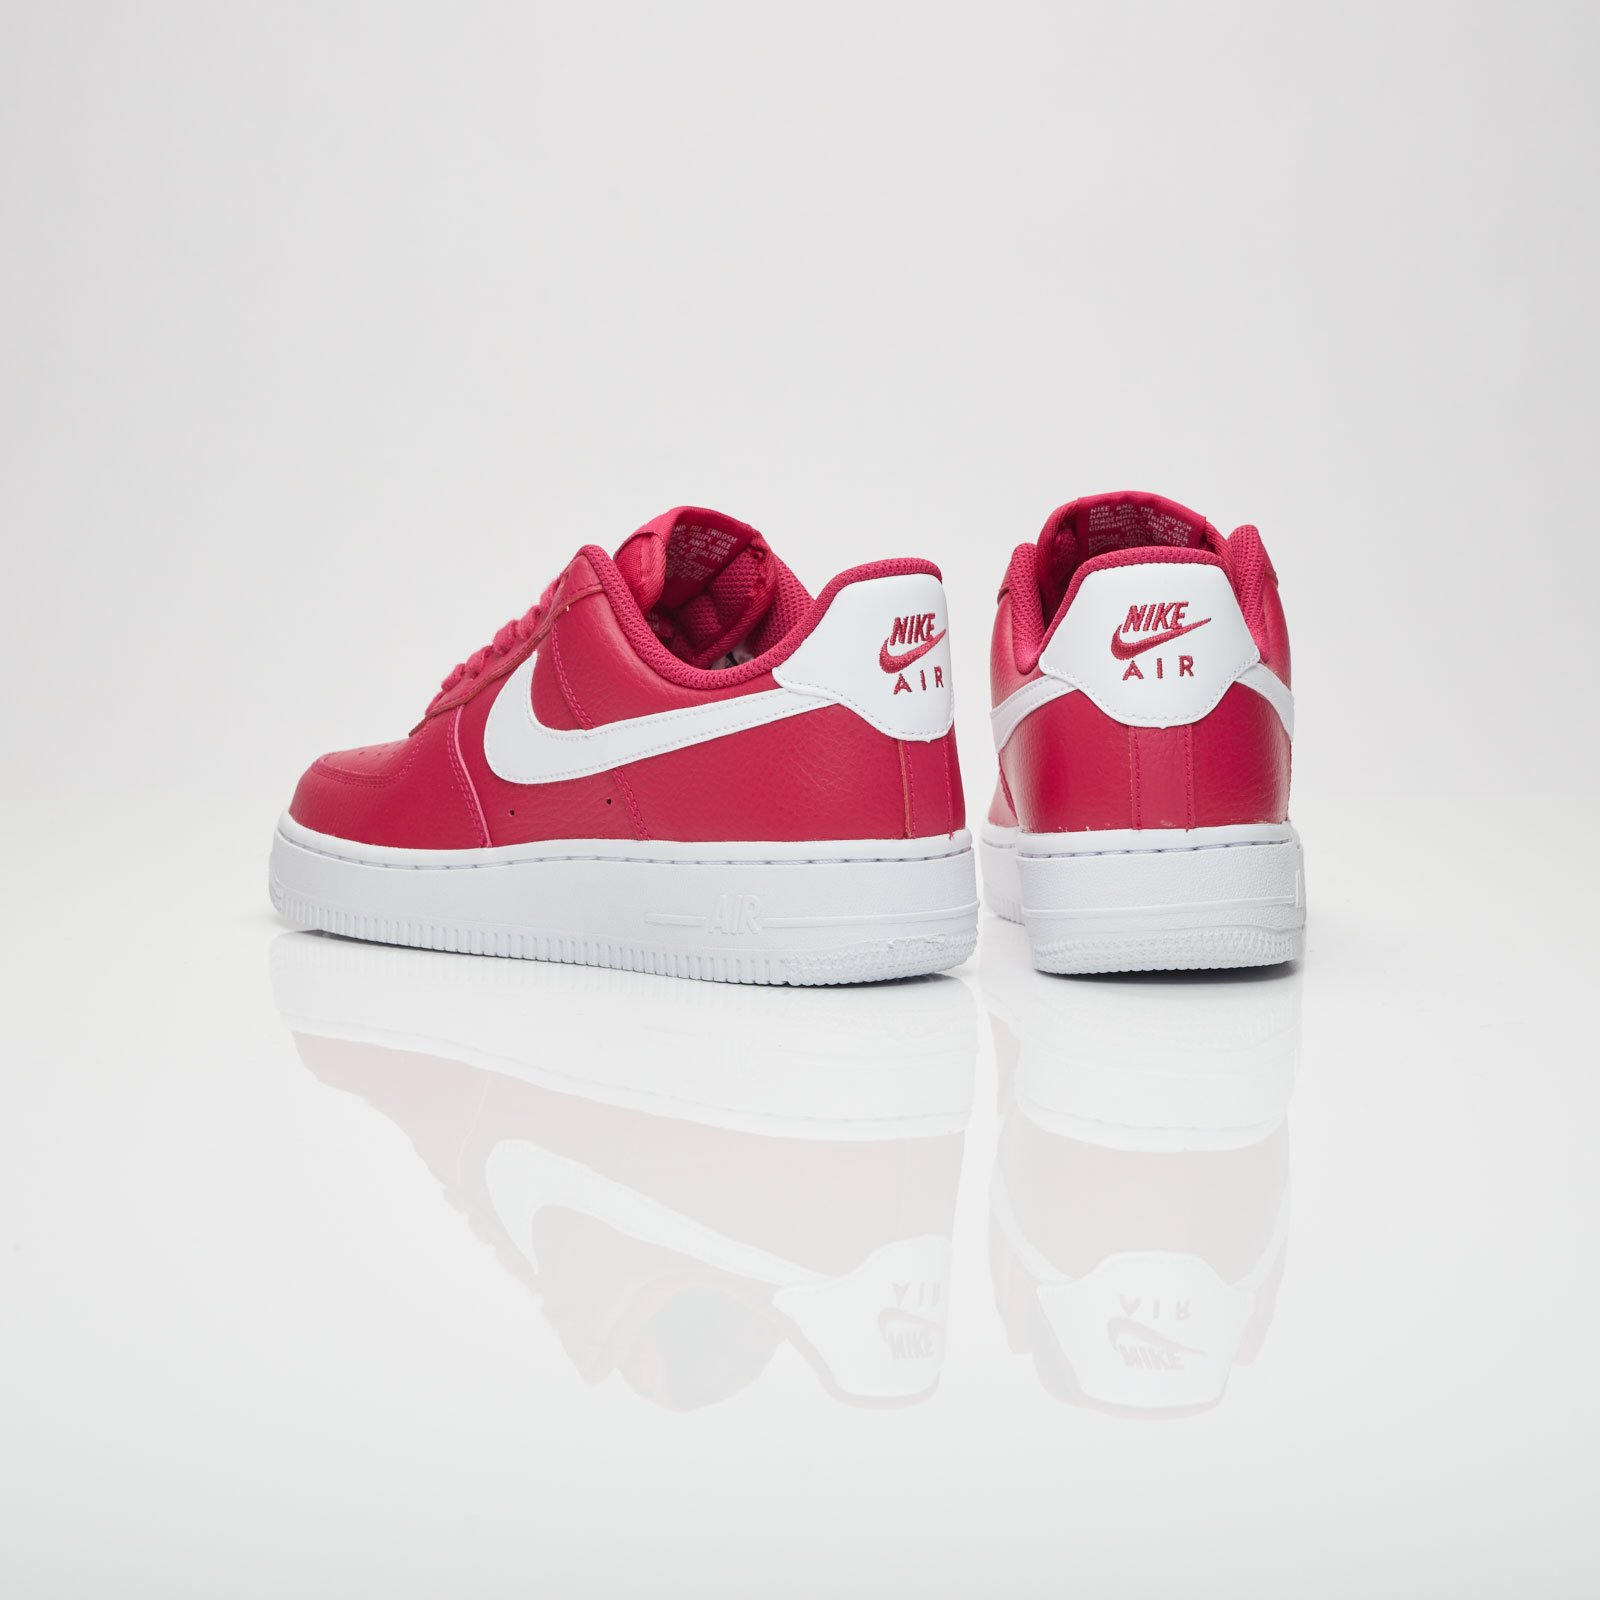 the latest d78fd f0845 Nike Wmns Air Force 1 07 SE - 896184-600 - Sneakersnstuff   sneakers    streetwear online since 1999